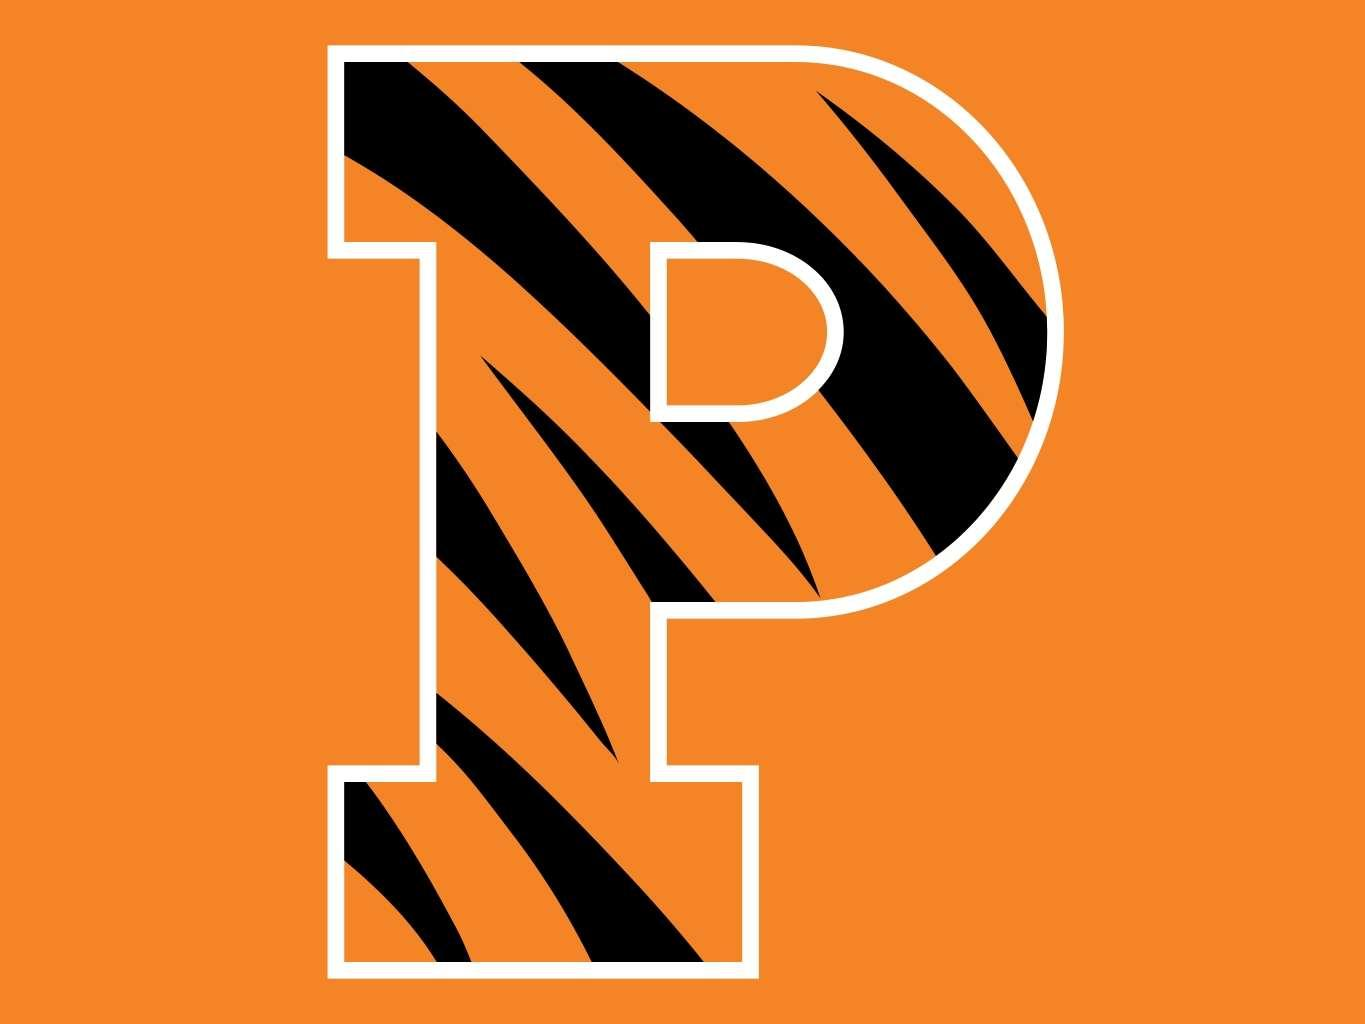 The logo for Princeton University which placed 14th in our ranking for colleges with crew teams